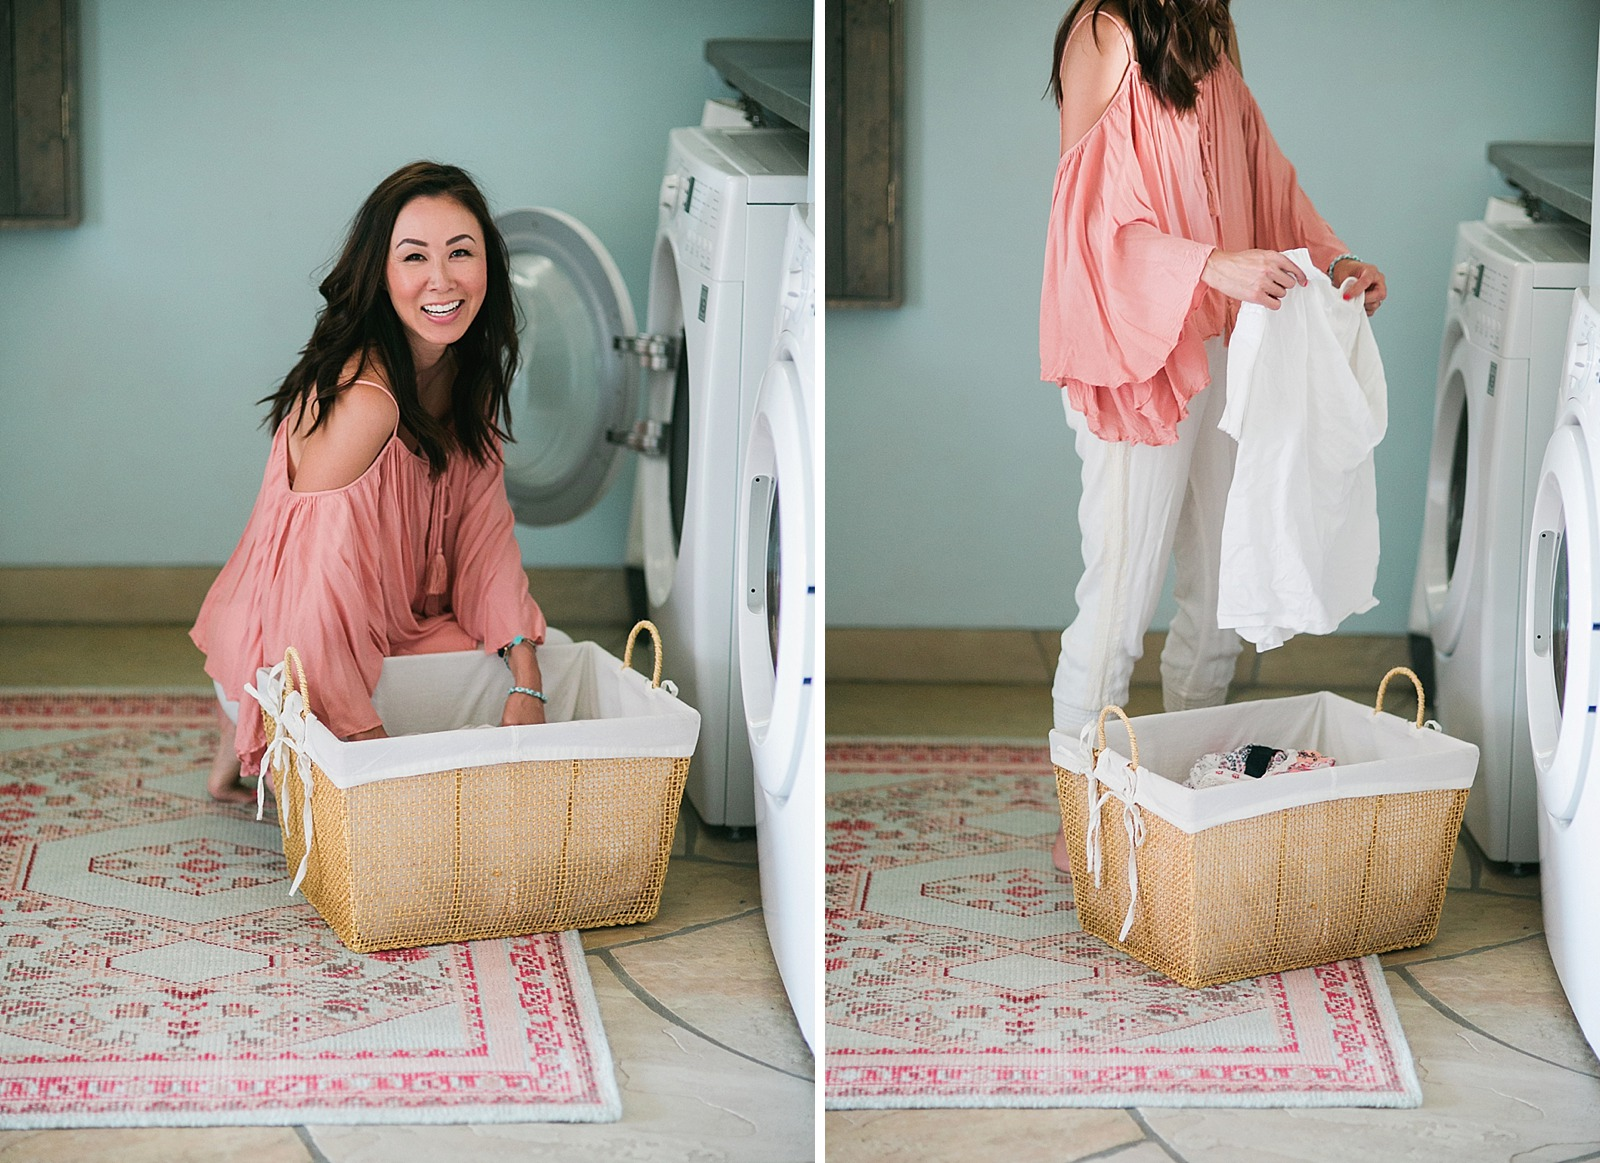 rugstudio-com-rug-studio-pink-sea-foam-laundry-room-rustic-mud-room-diana-elizabeth-blog_0063